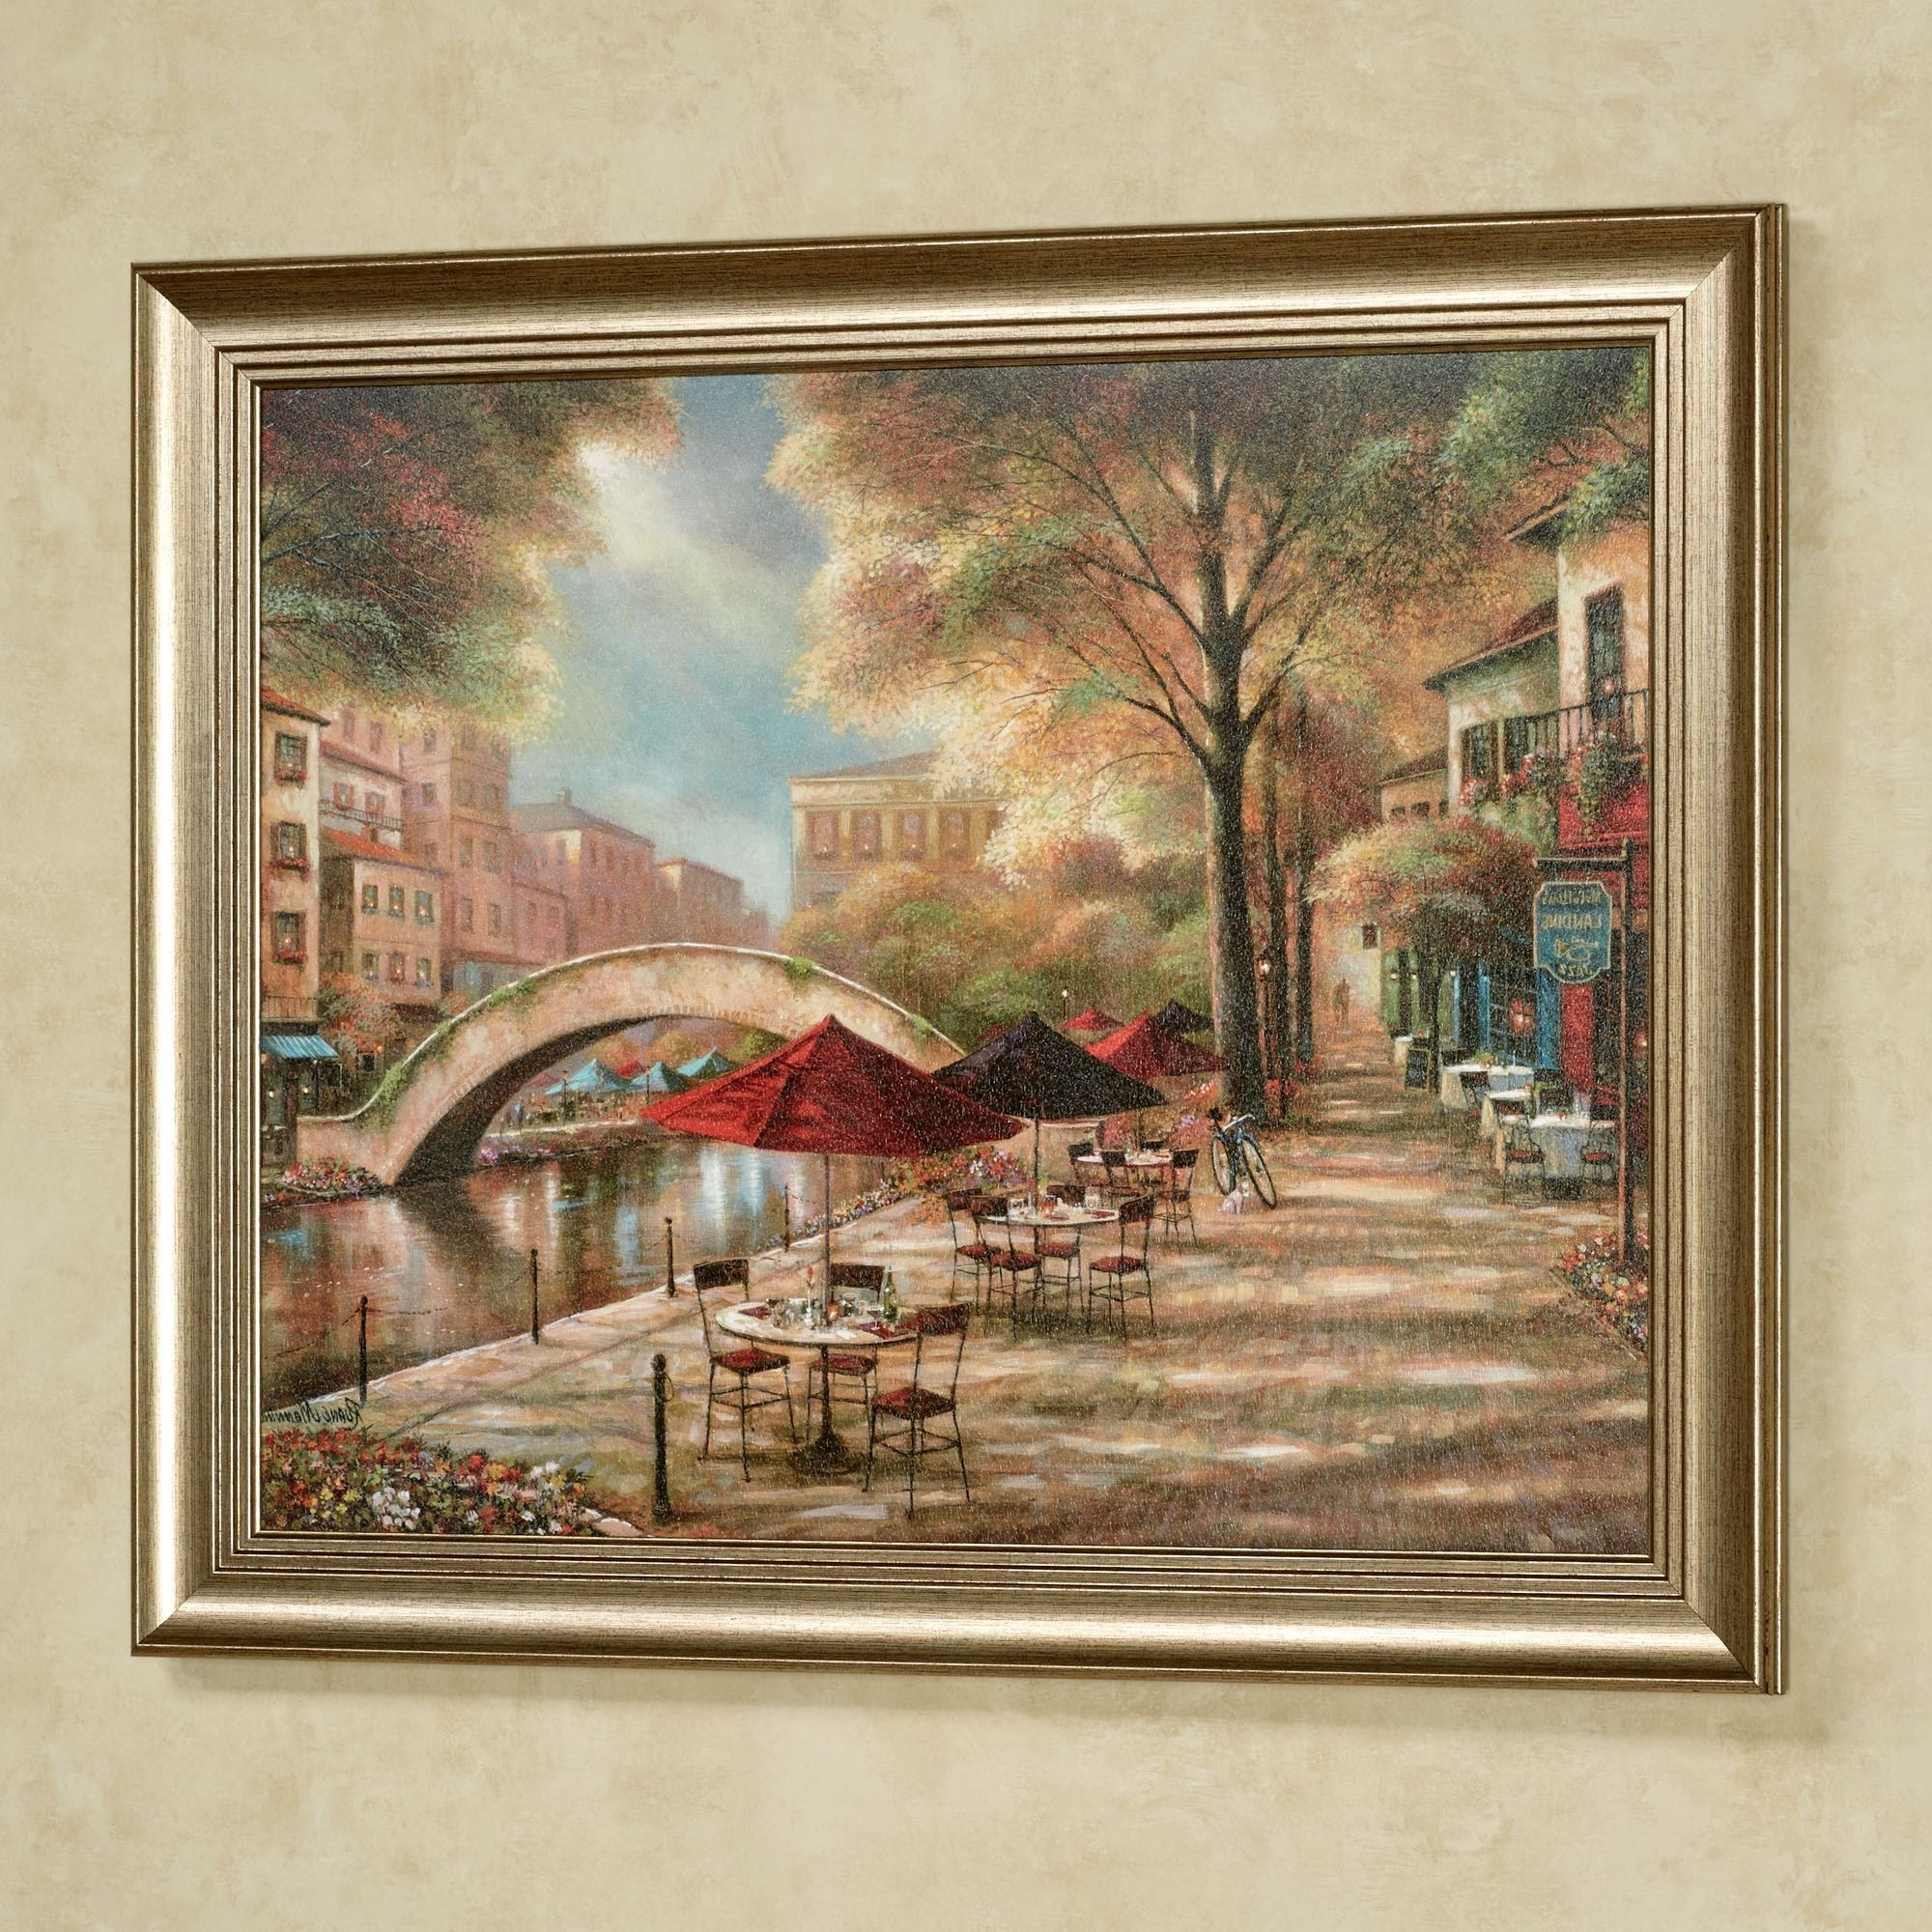 Most Recently Released Riverwalk Charm Framed Wall Art Picture Inside Macys Wall Art (View 5 of 15)